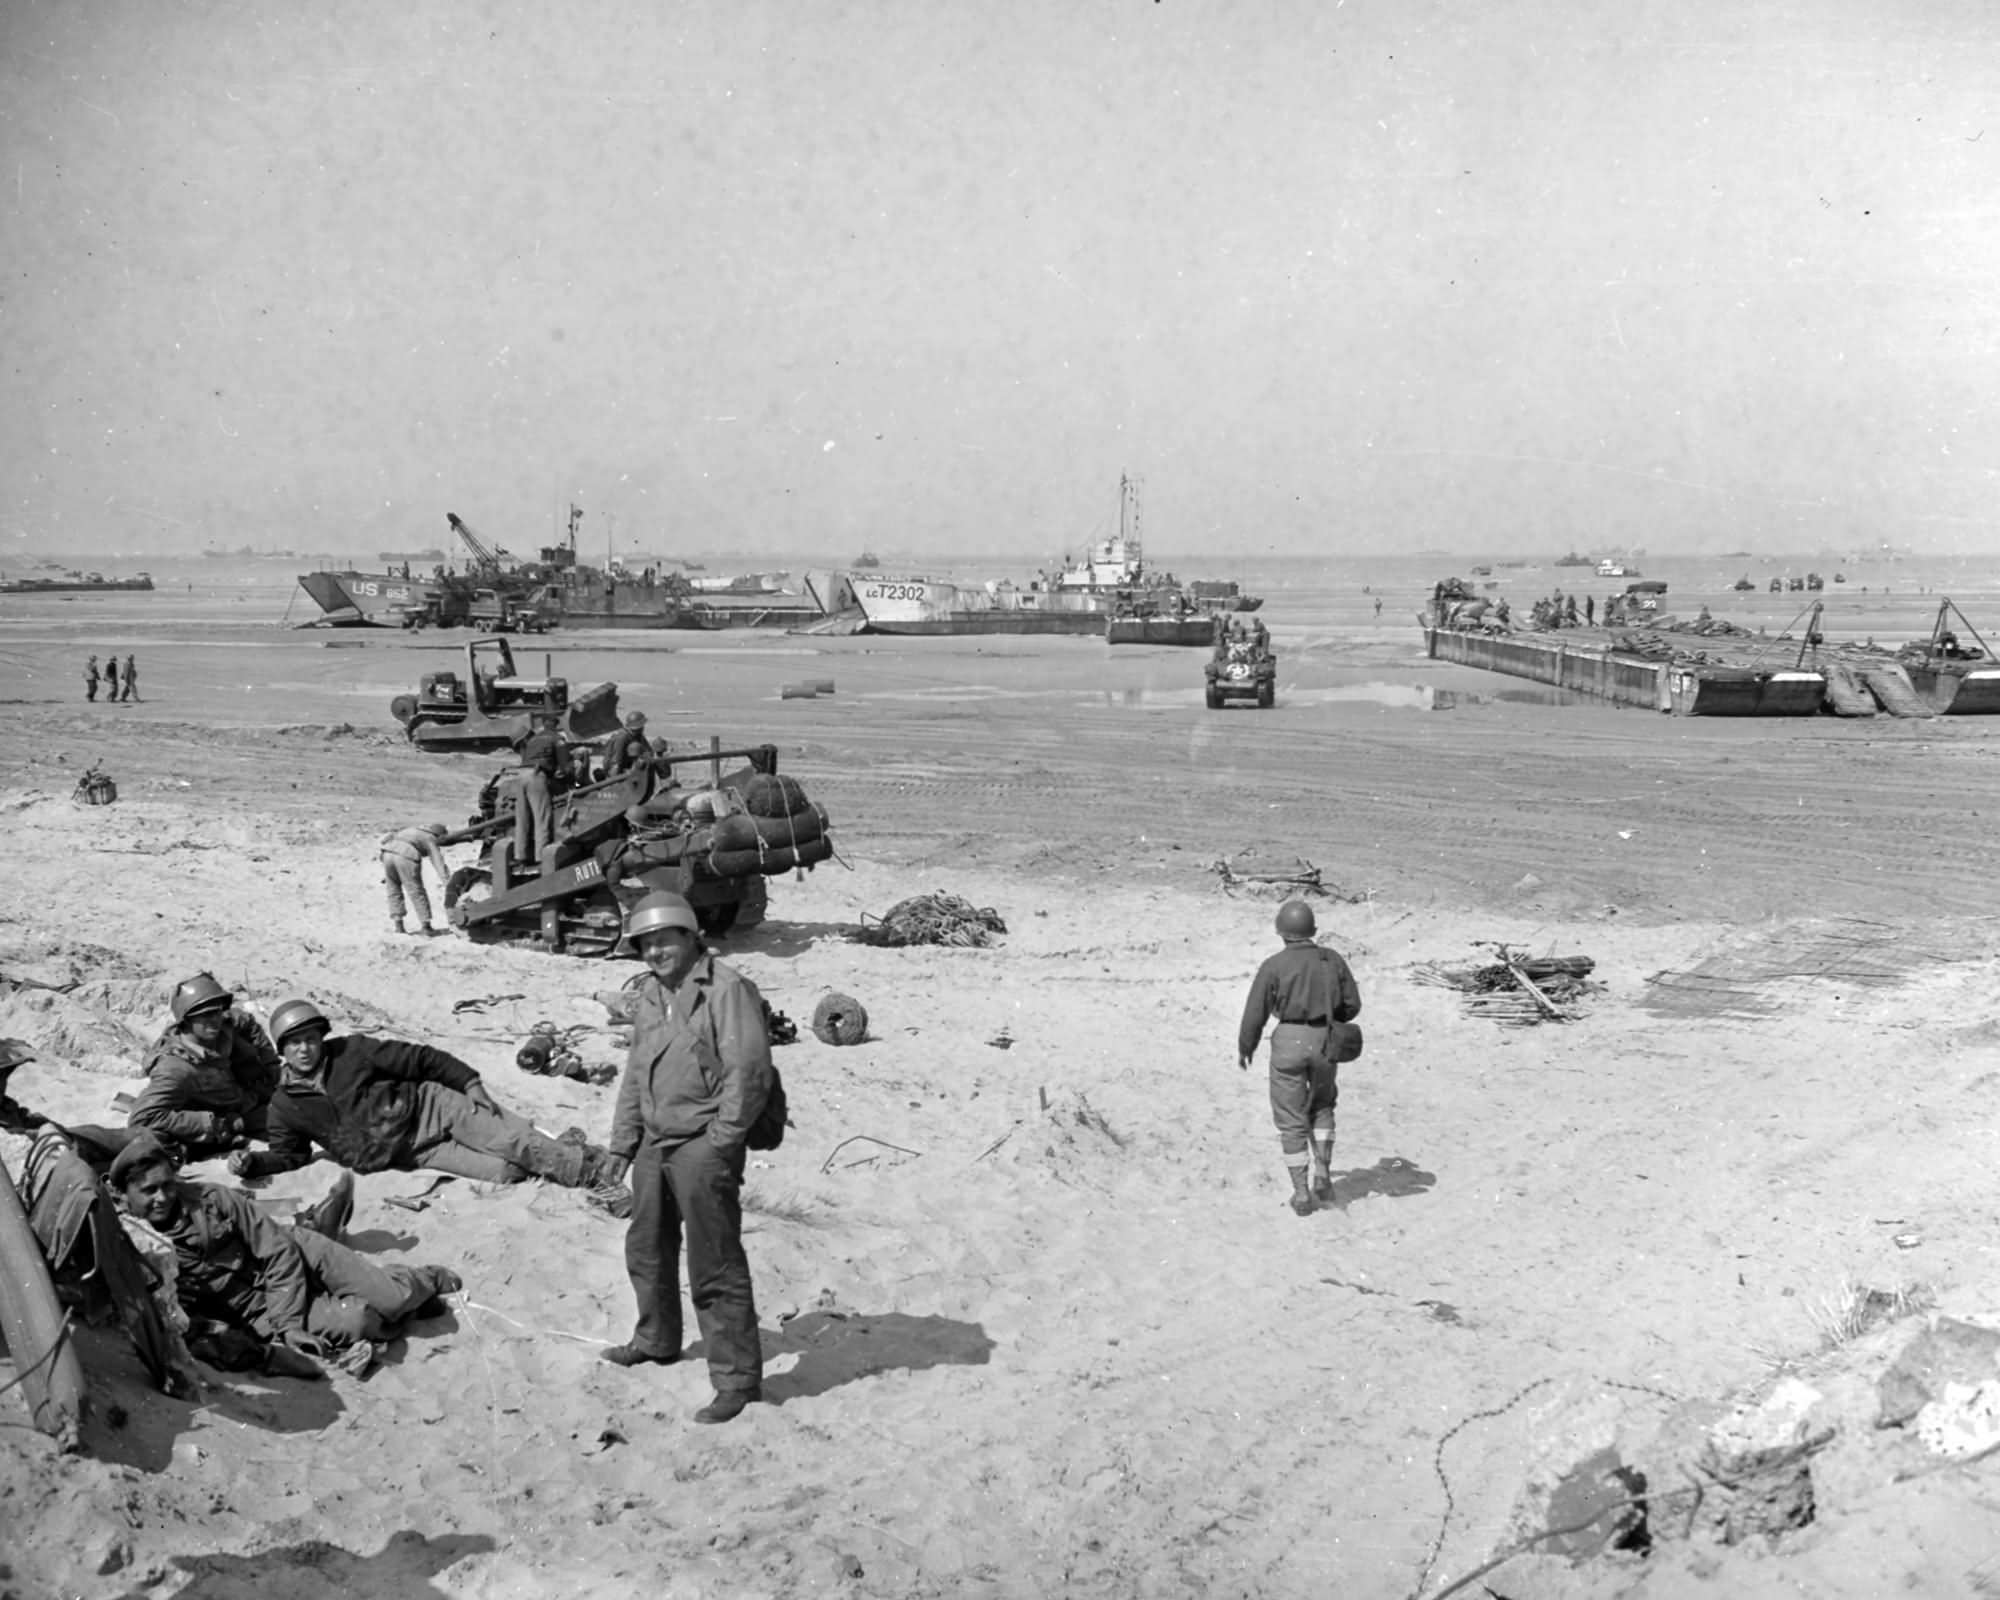 Scene on one of the invasion beache during force buildup operations in June 1944